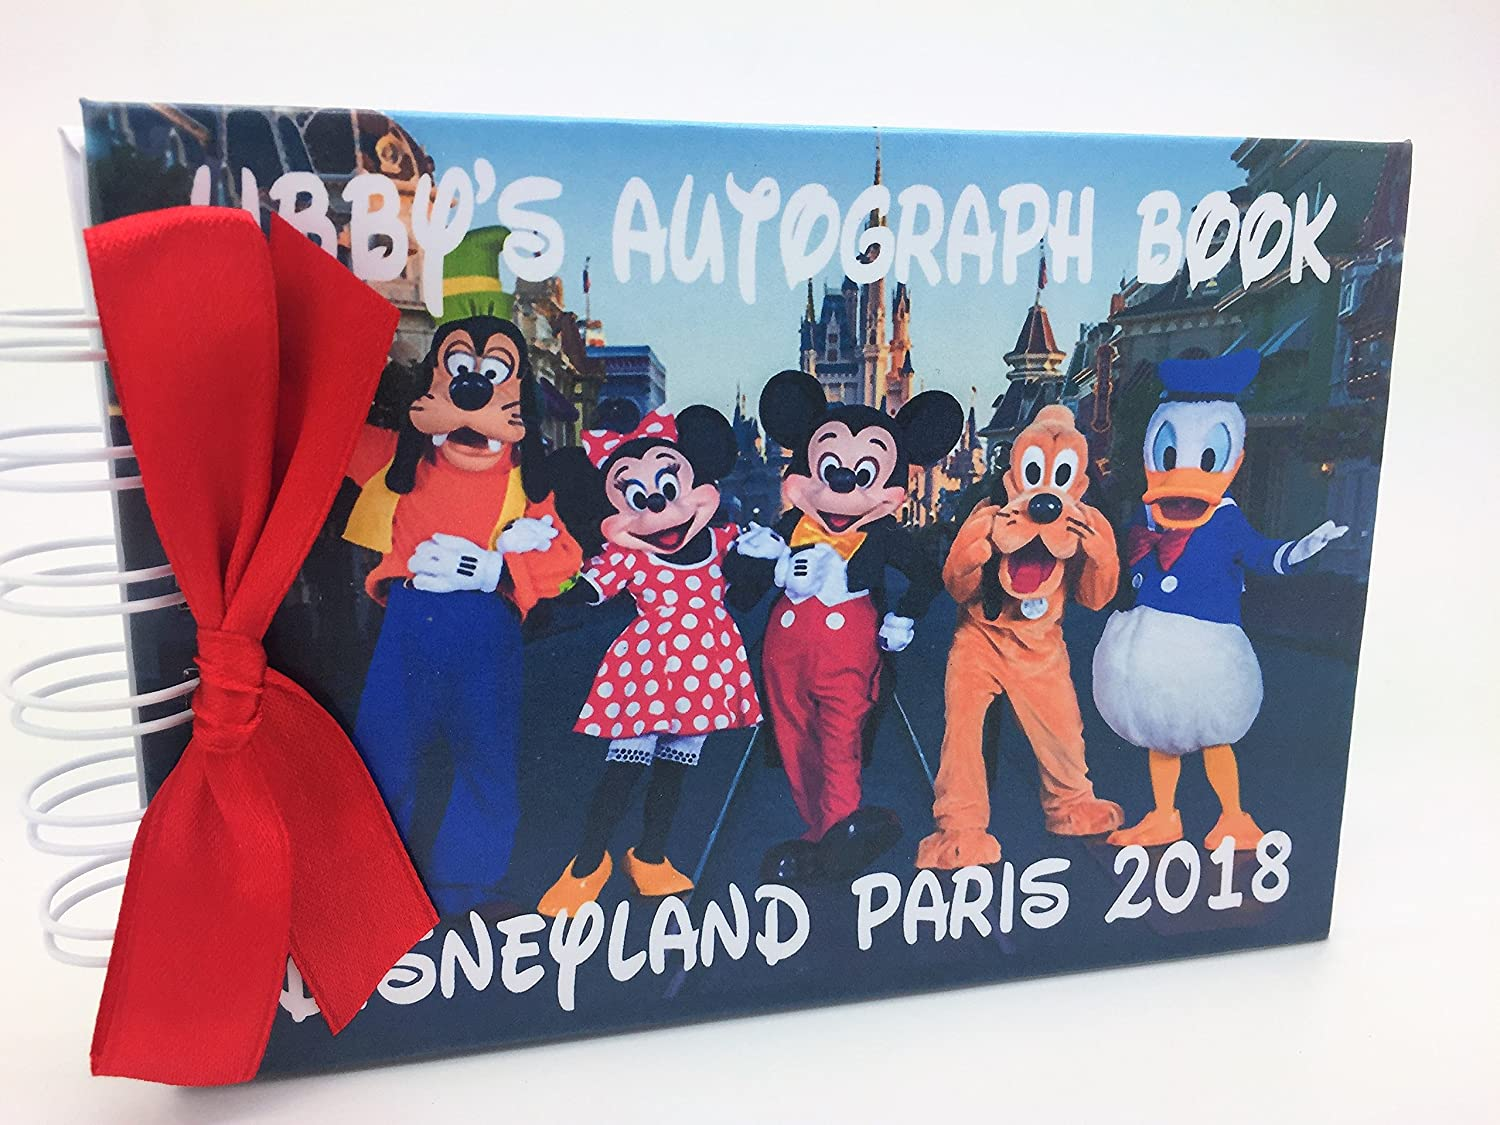 Any occasion POCKET SIZED PERSONALISED DISNEY MICKEY MOUSE & FRIENDS AUTOGRAPH BOOK in the UK size Approx 4.2